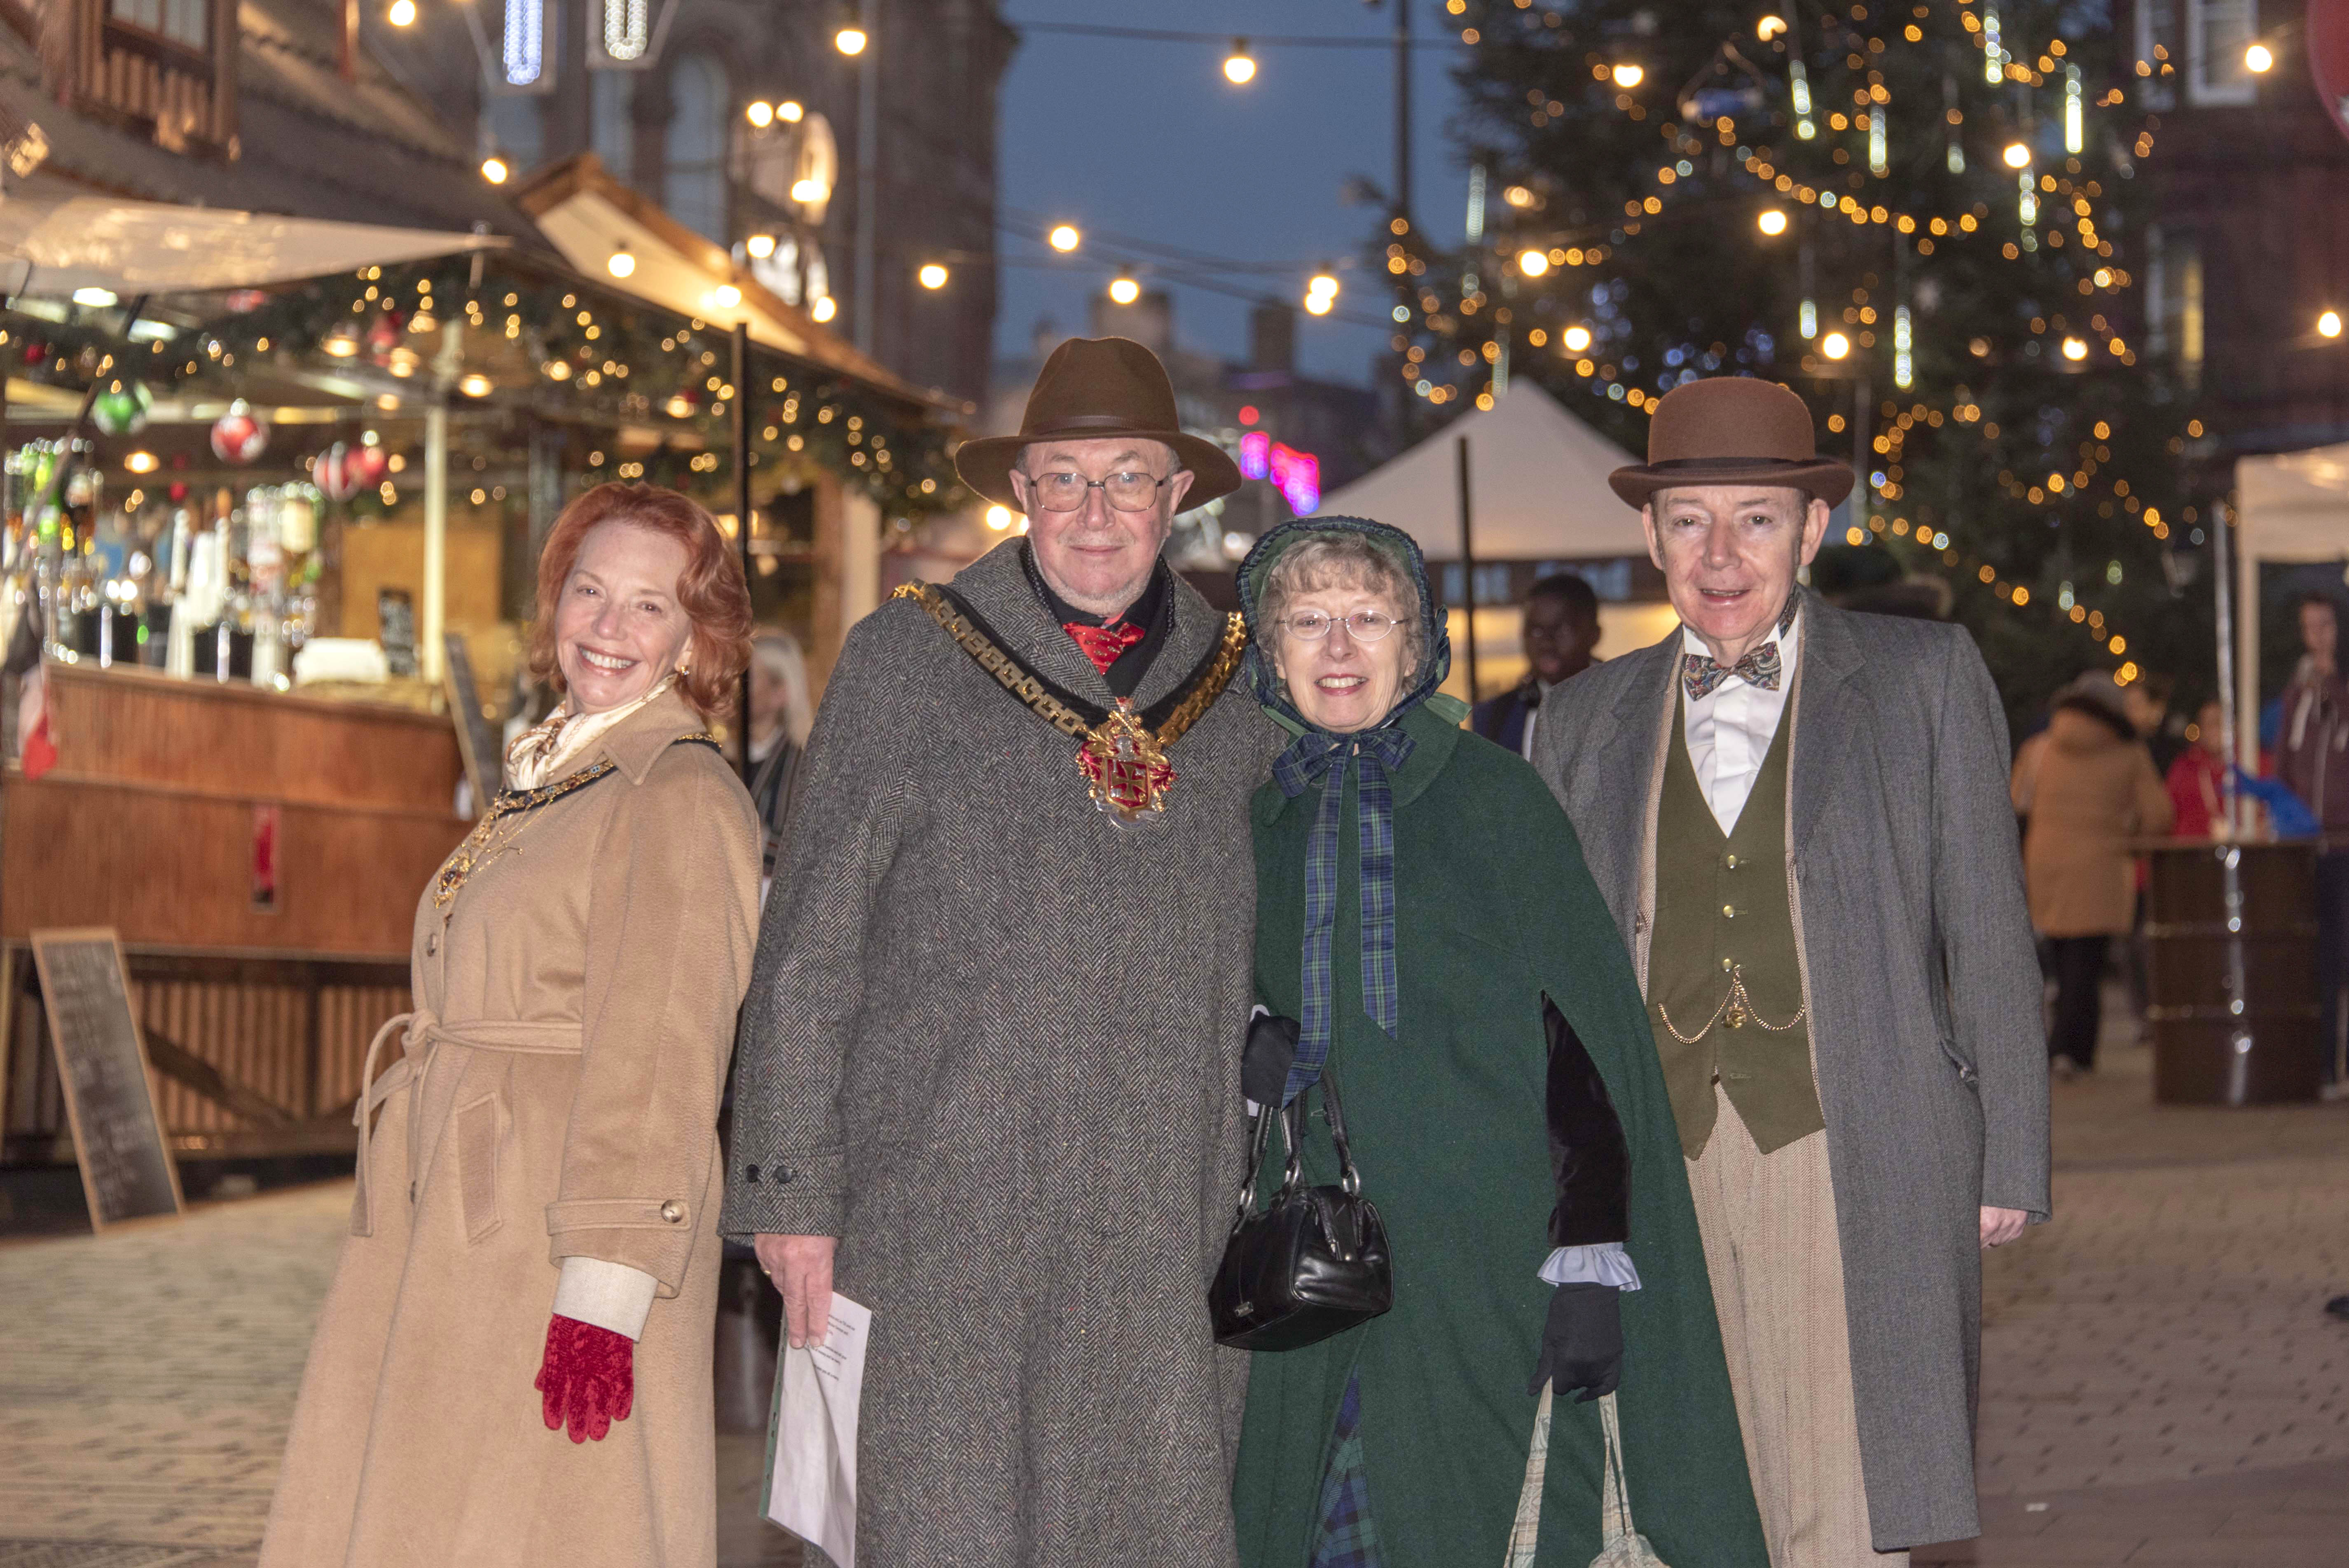 Victorian Christmas Market visitor figures double